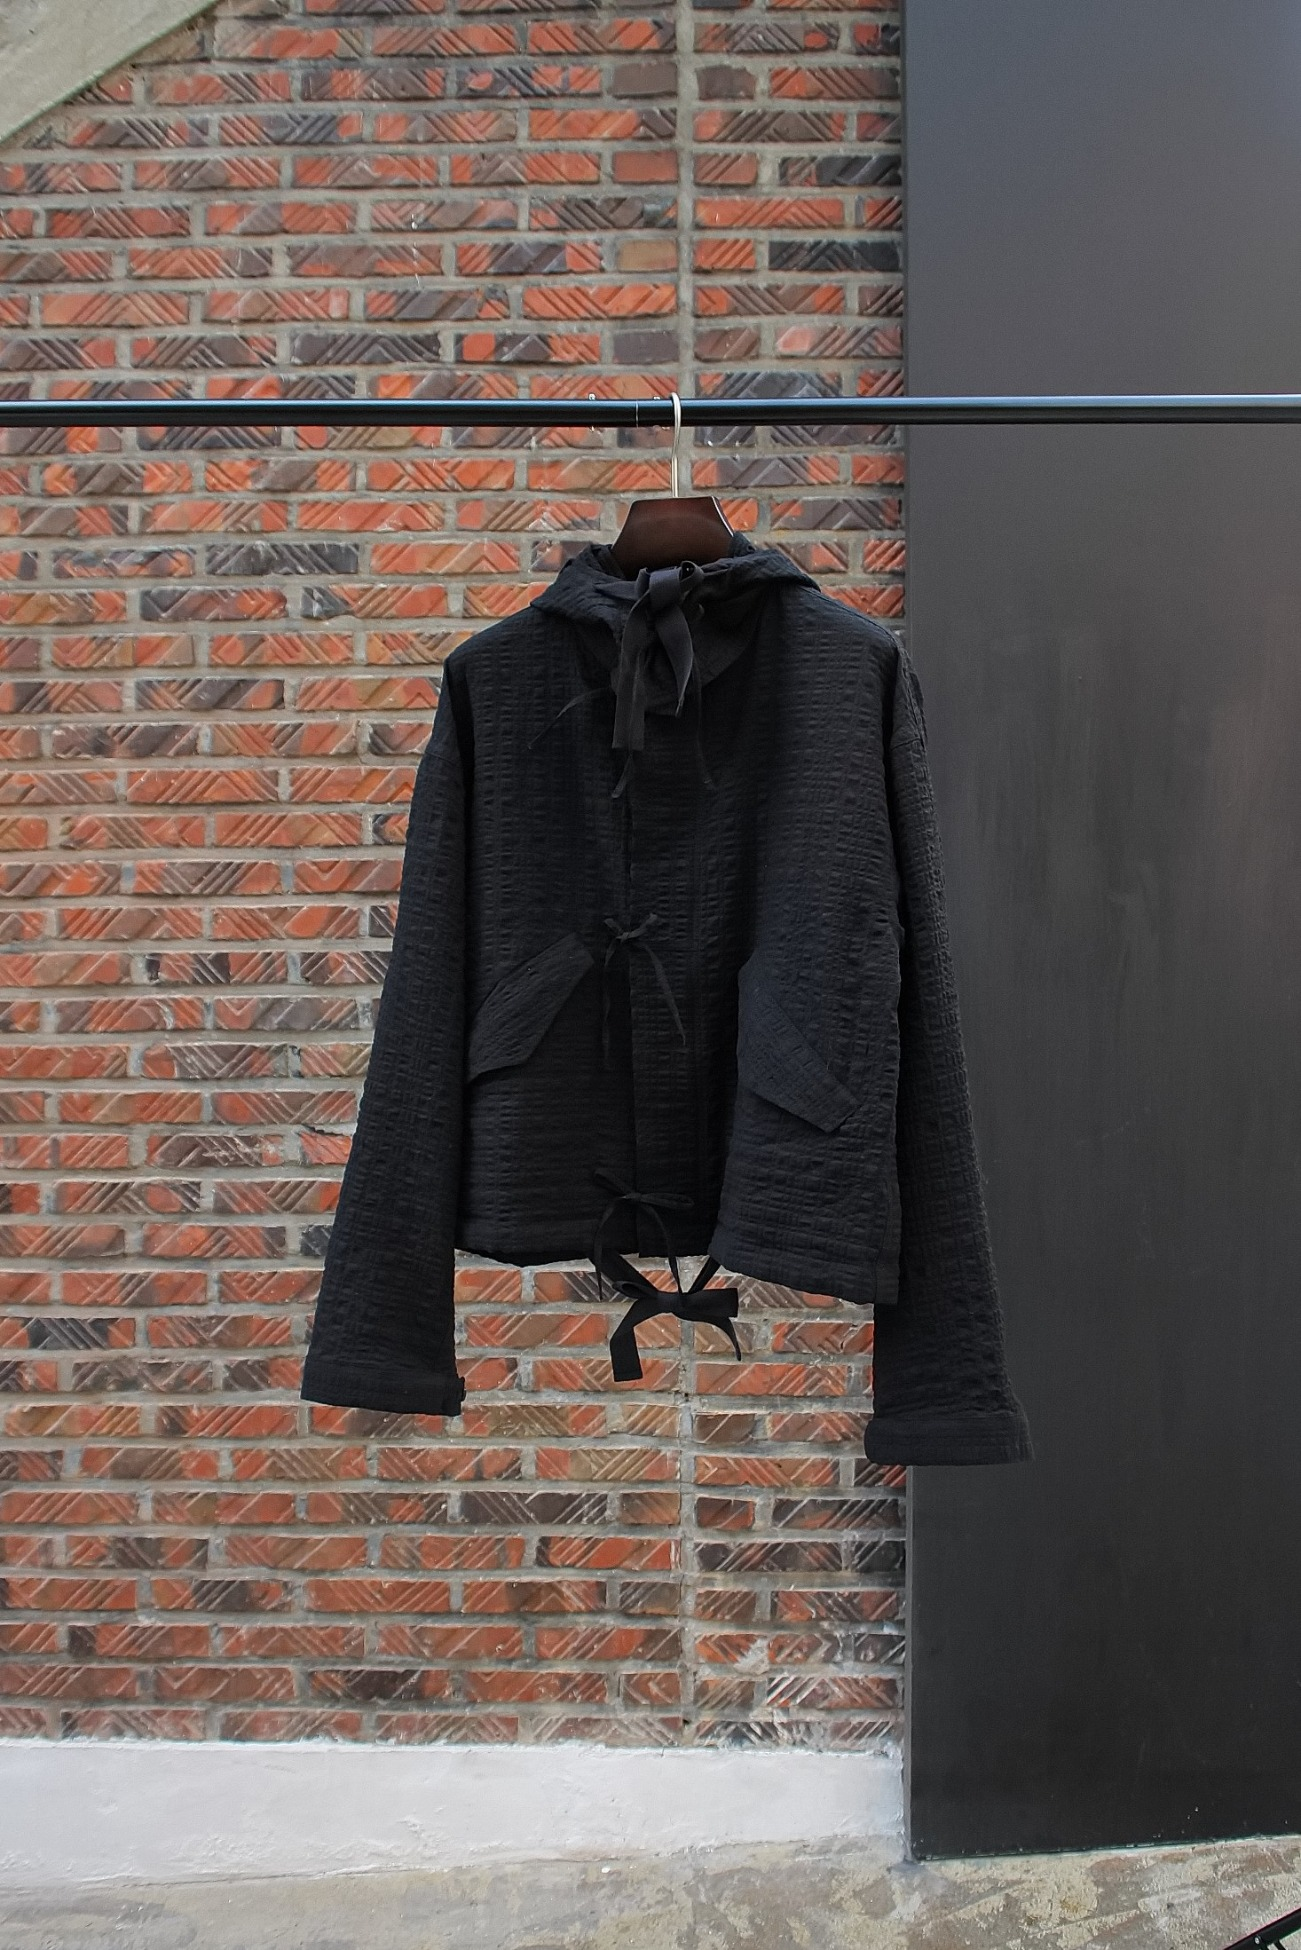 [s.k. manor hill] Chopped Fish Jacket - Black Puckered